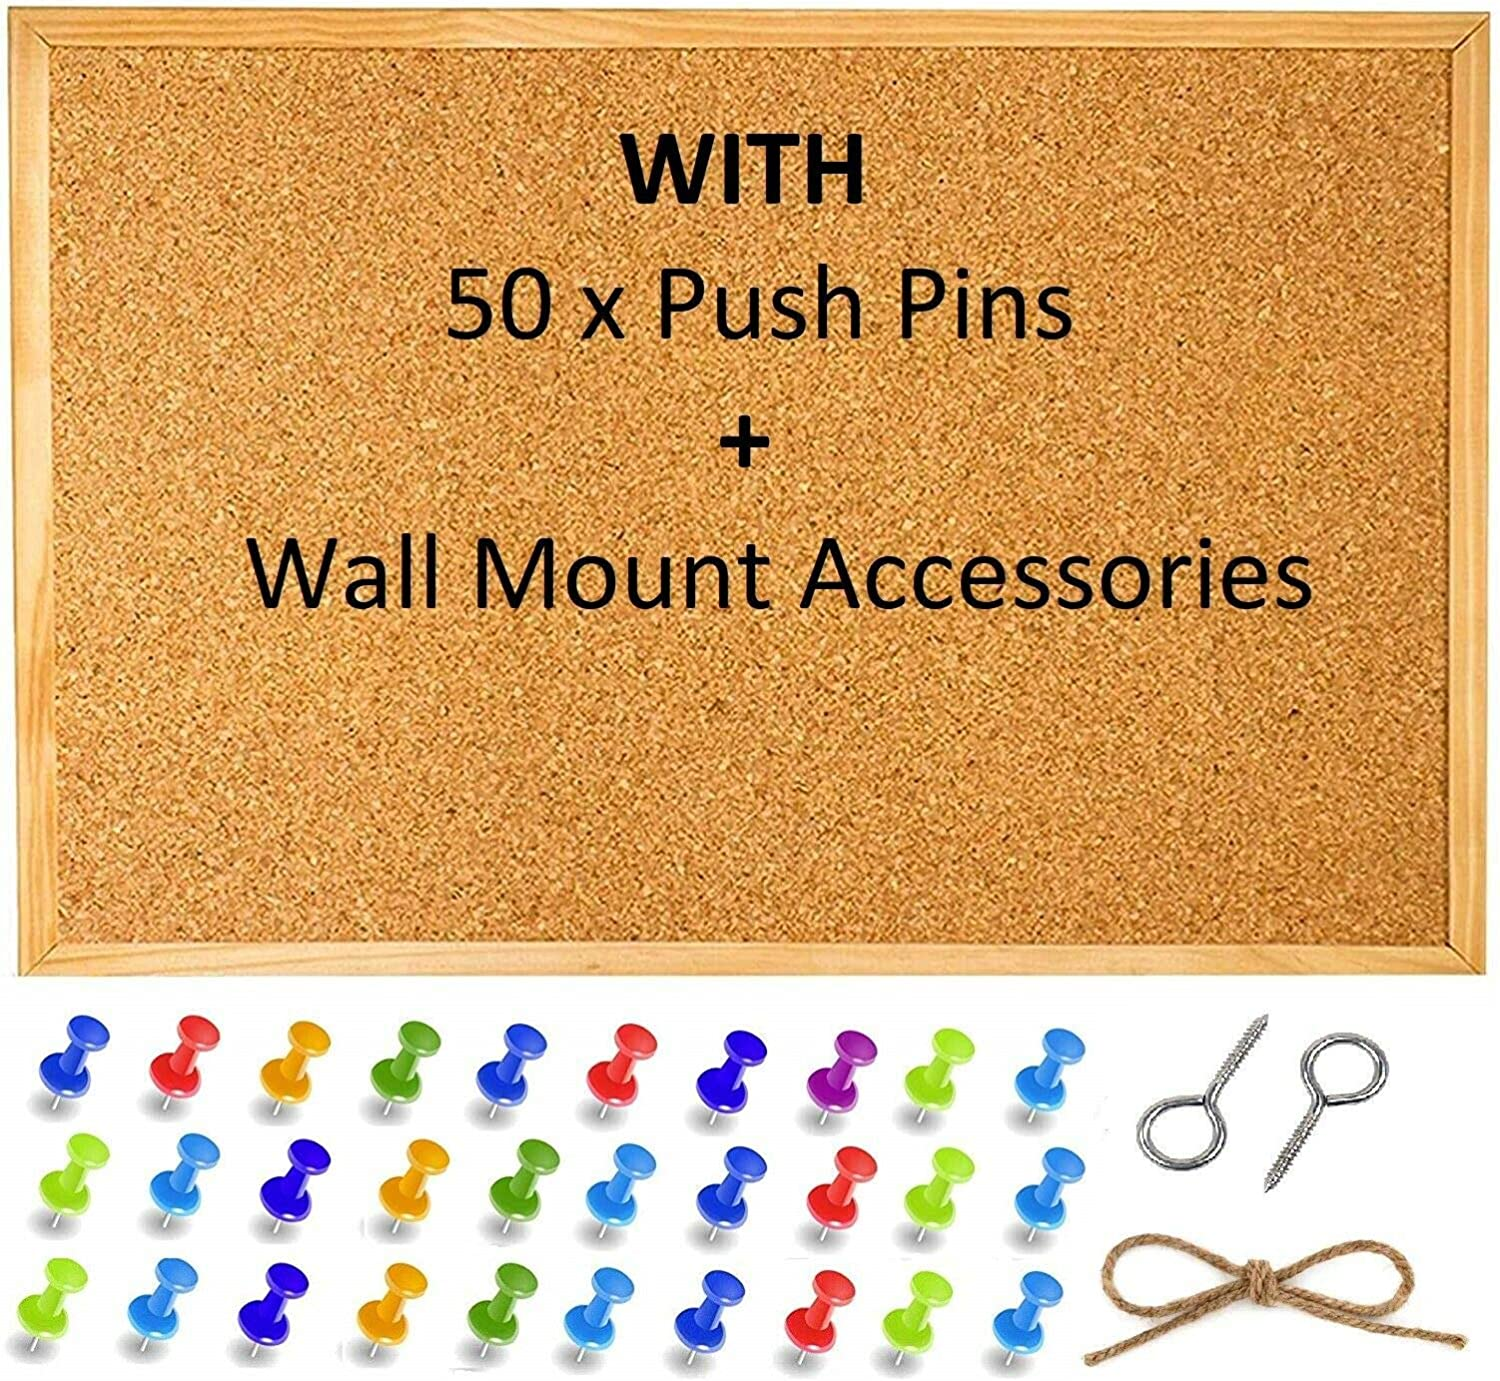 45 x 30 cm Wall Mount Screws and Push Pins Cork Pin Notice Board Bulletin Vision Boards for Home Bedroom Offices Memo Message Pictures Planner Display Organiser Wood Frame Corkboard